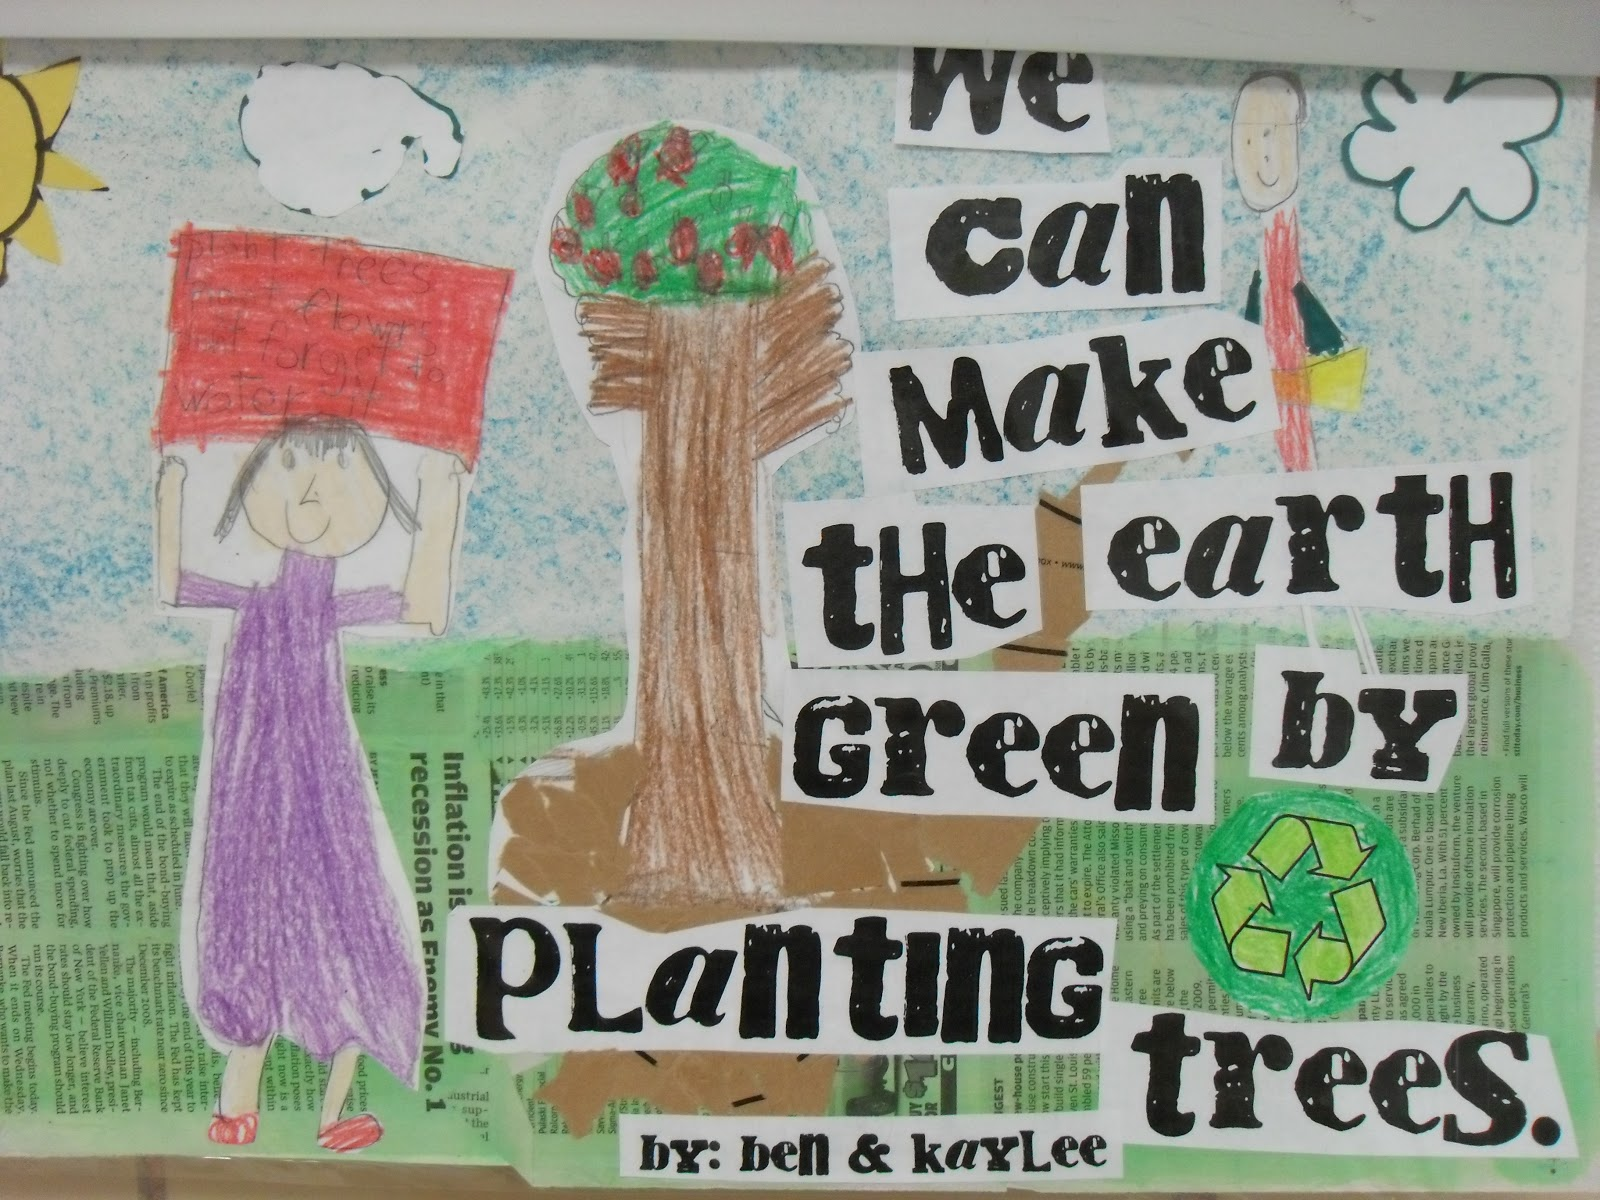 essay on green earth for kids Free pdf ebooks (user's guide, manuals, sheets) about green earth essay for kids ready for download.